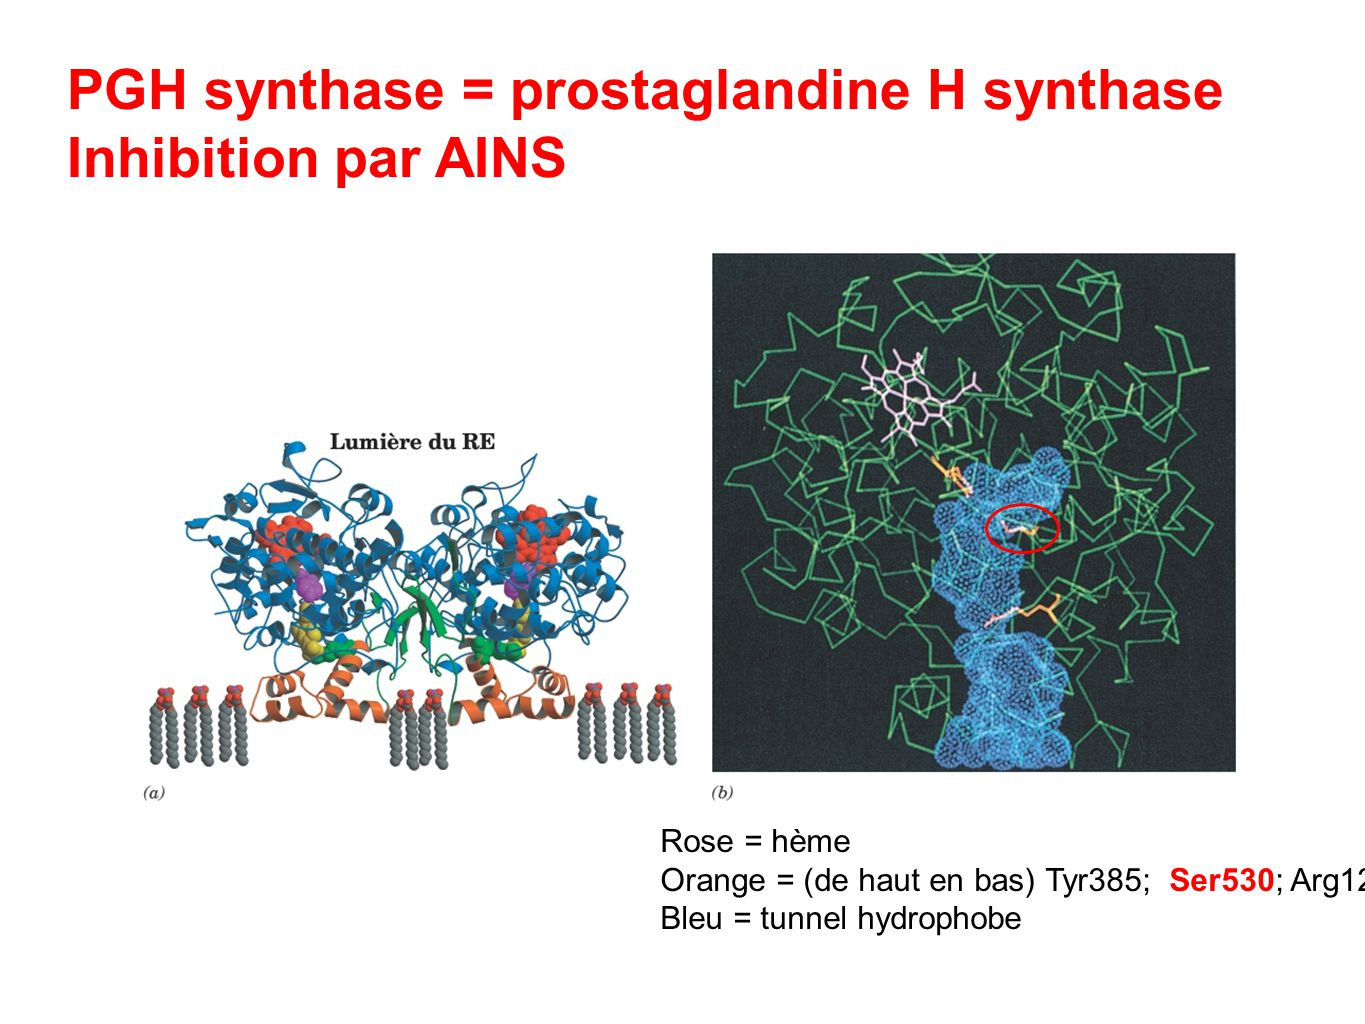 PGH synthase = prostaglandine H synthase Inhibition par AINS